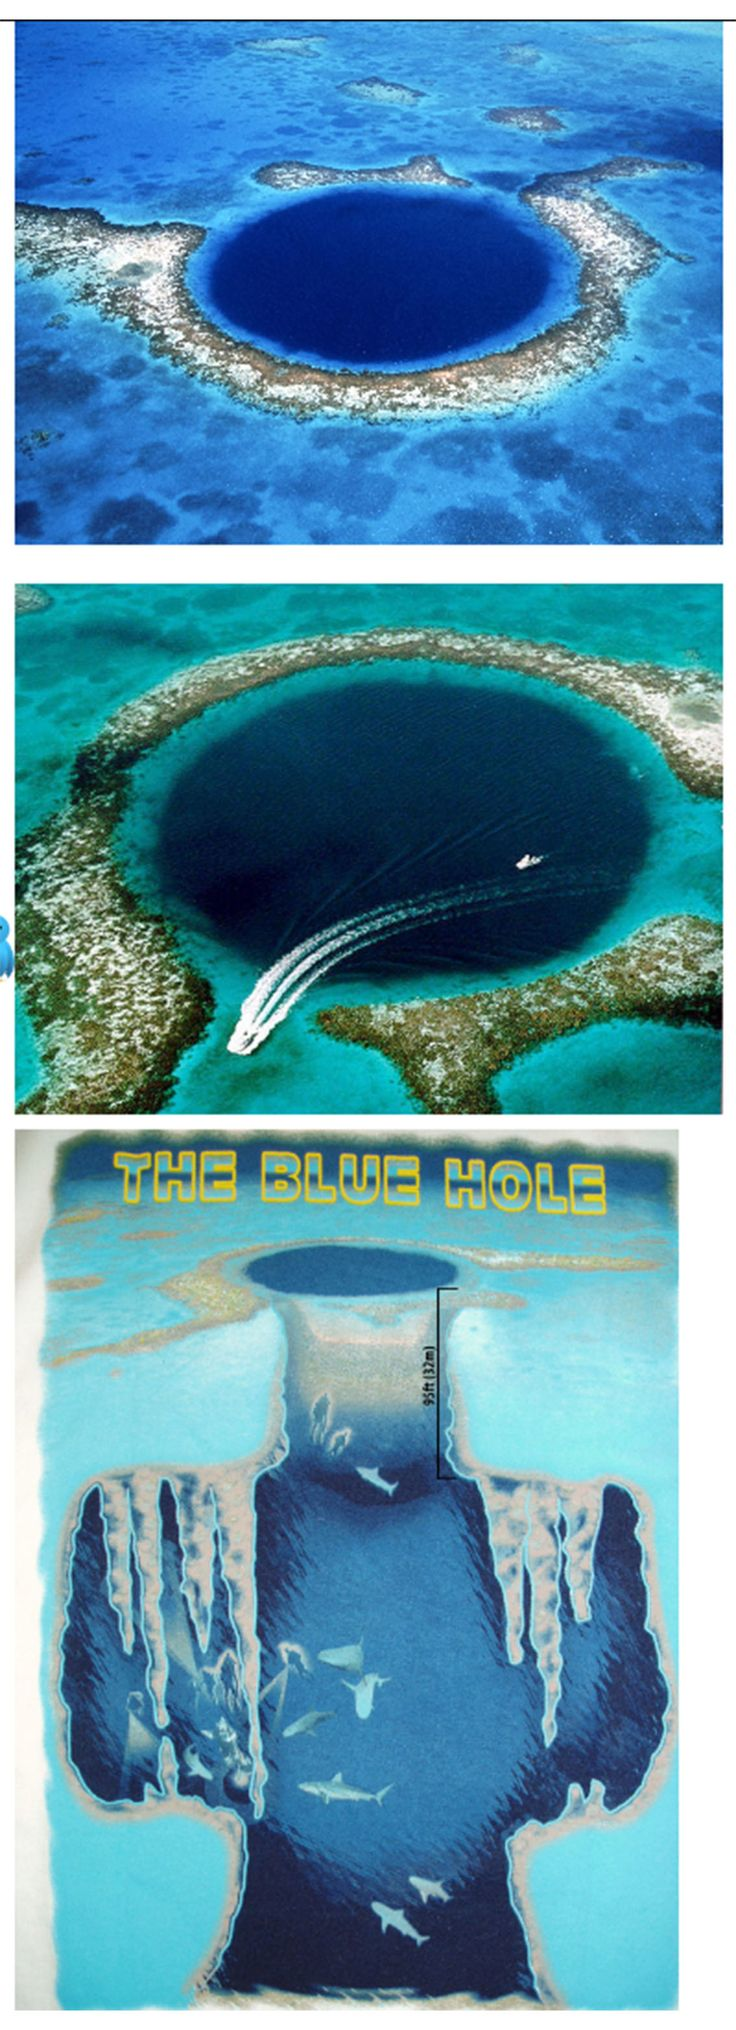 Great Blue Hole – An incredible blue hole showcasing how our ocean levels fluctuated over history.